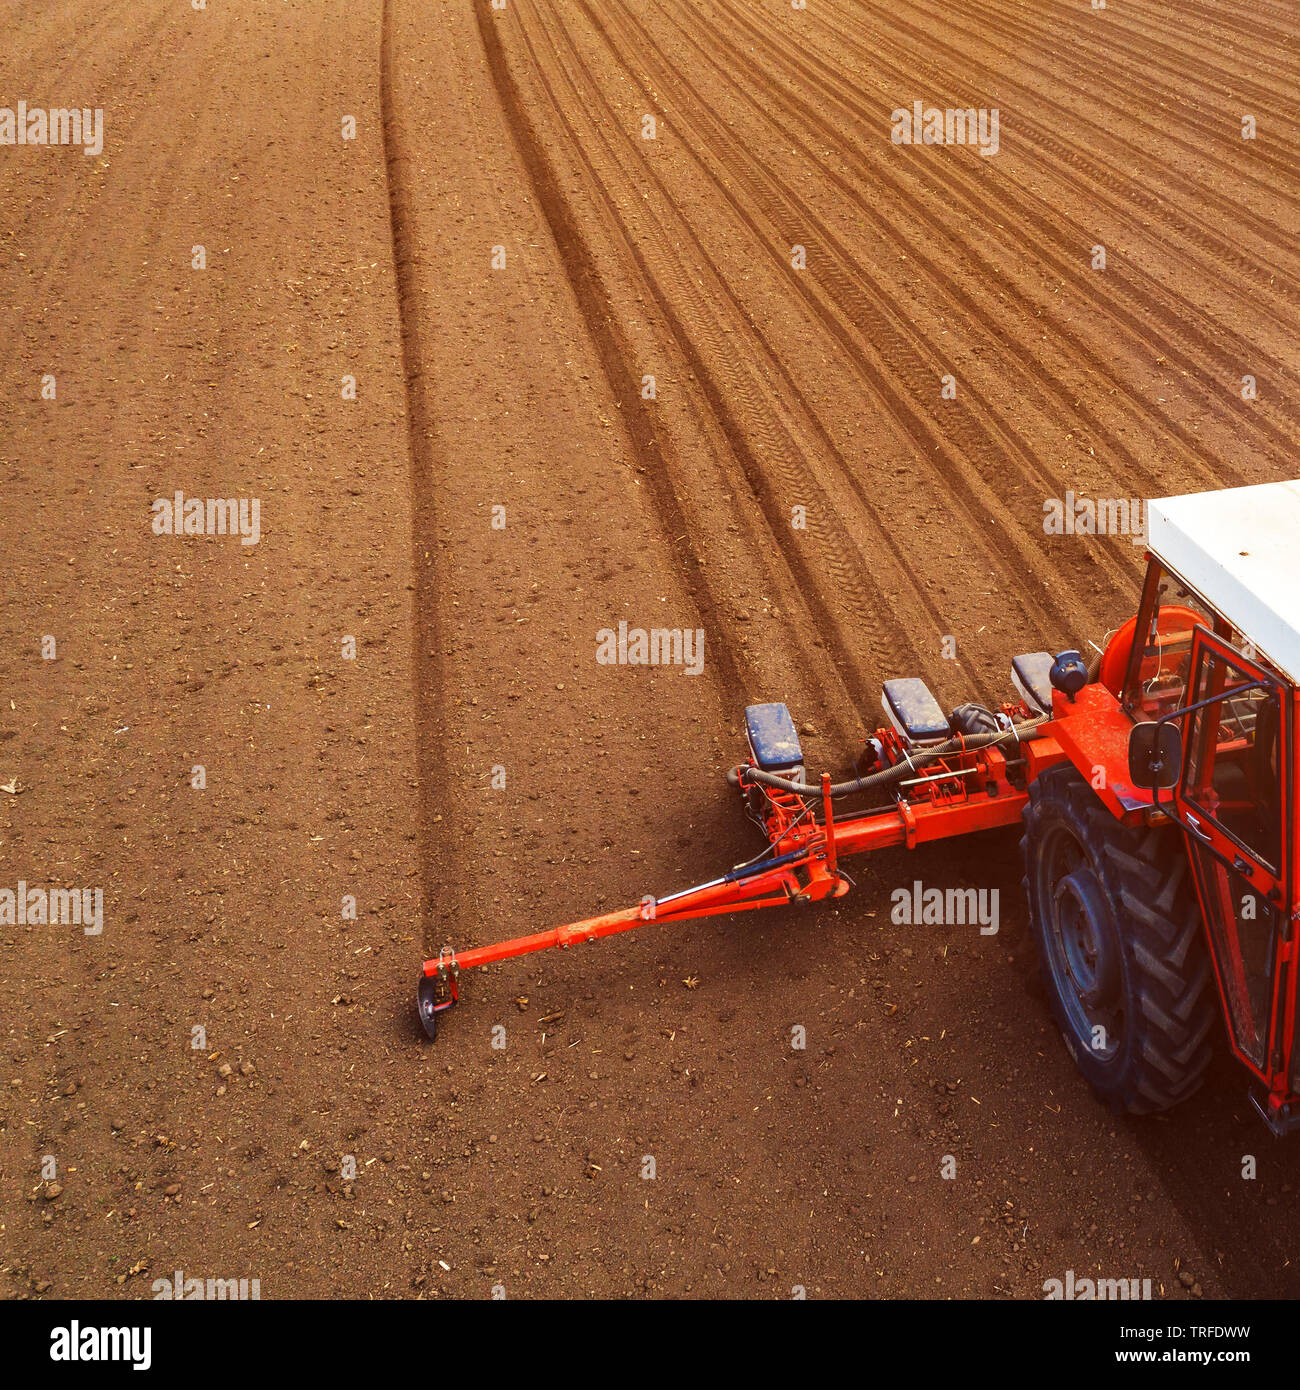 Seeding Tractor Stock Photos & Seeding Tractor Stock Images